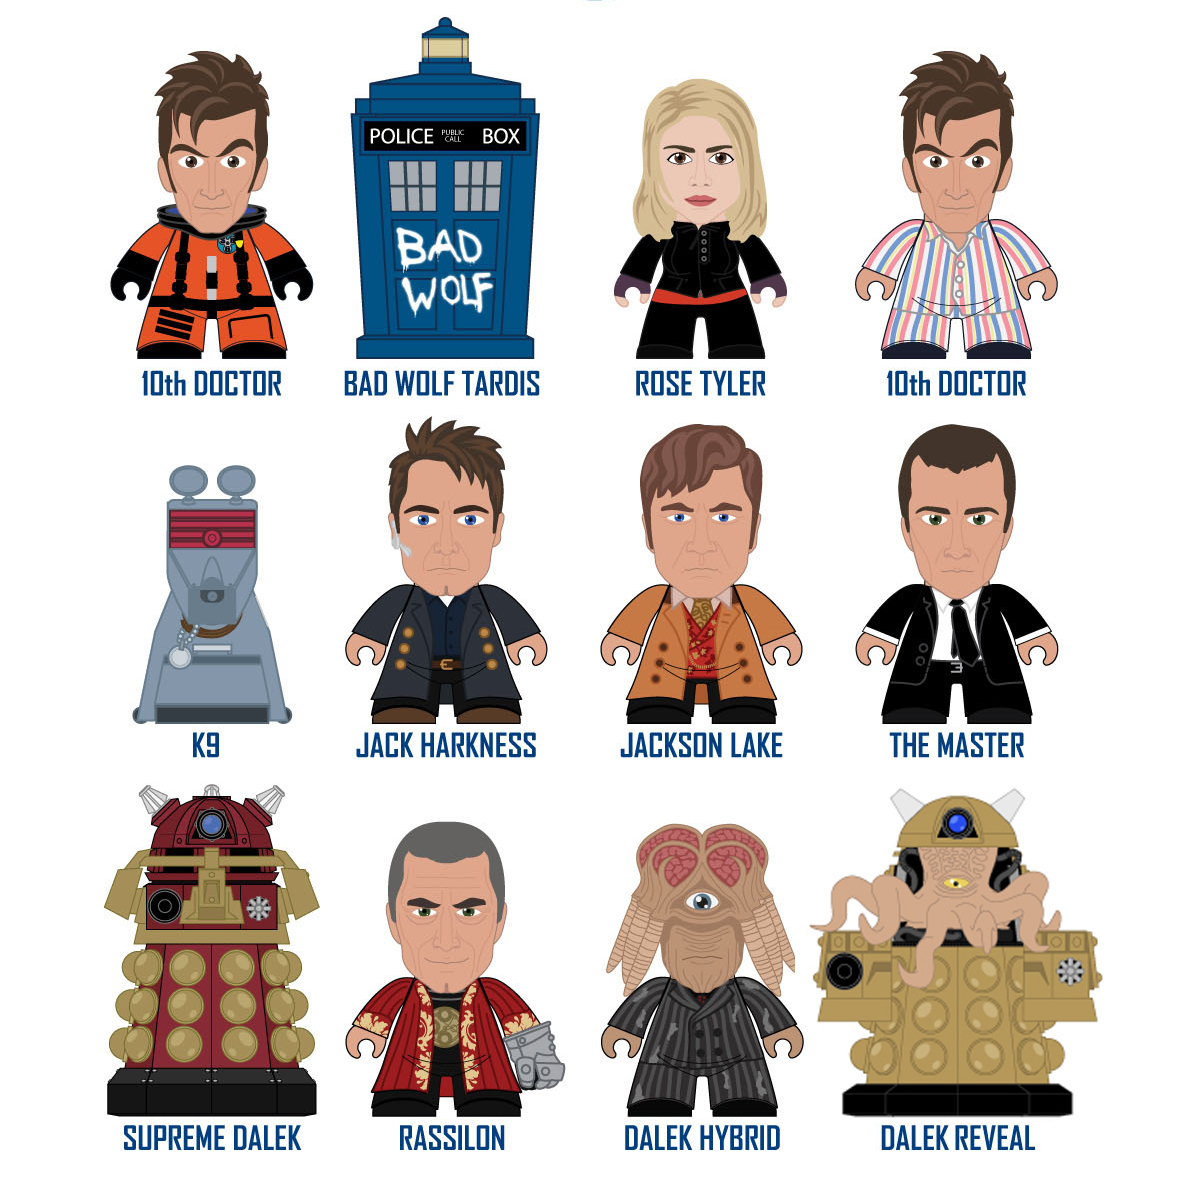 Titan Confirms Rose Tyler In New Gallifrey Doctor Who